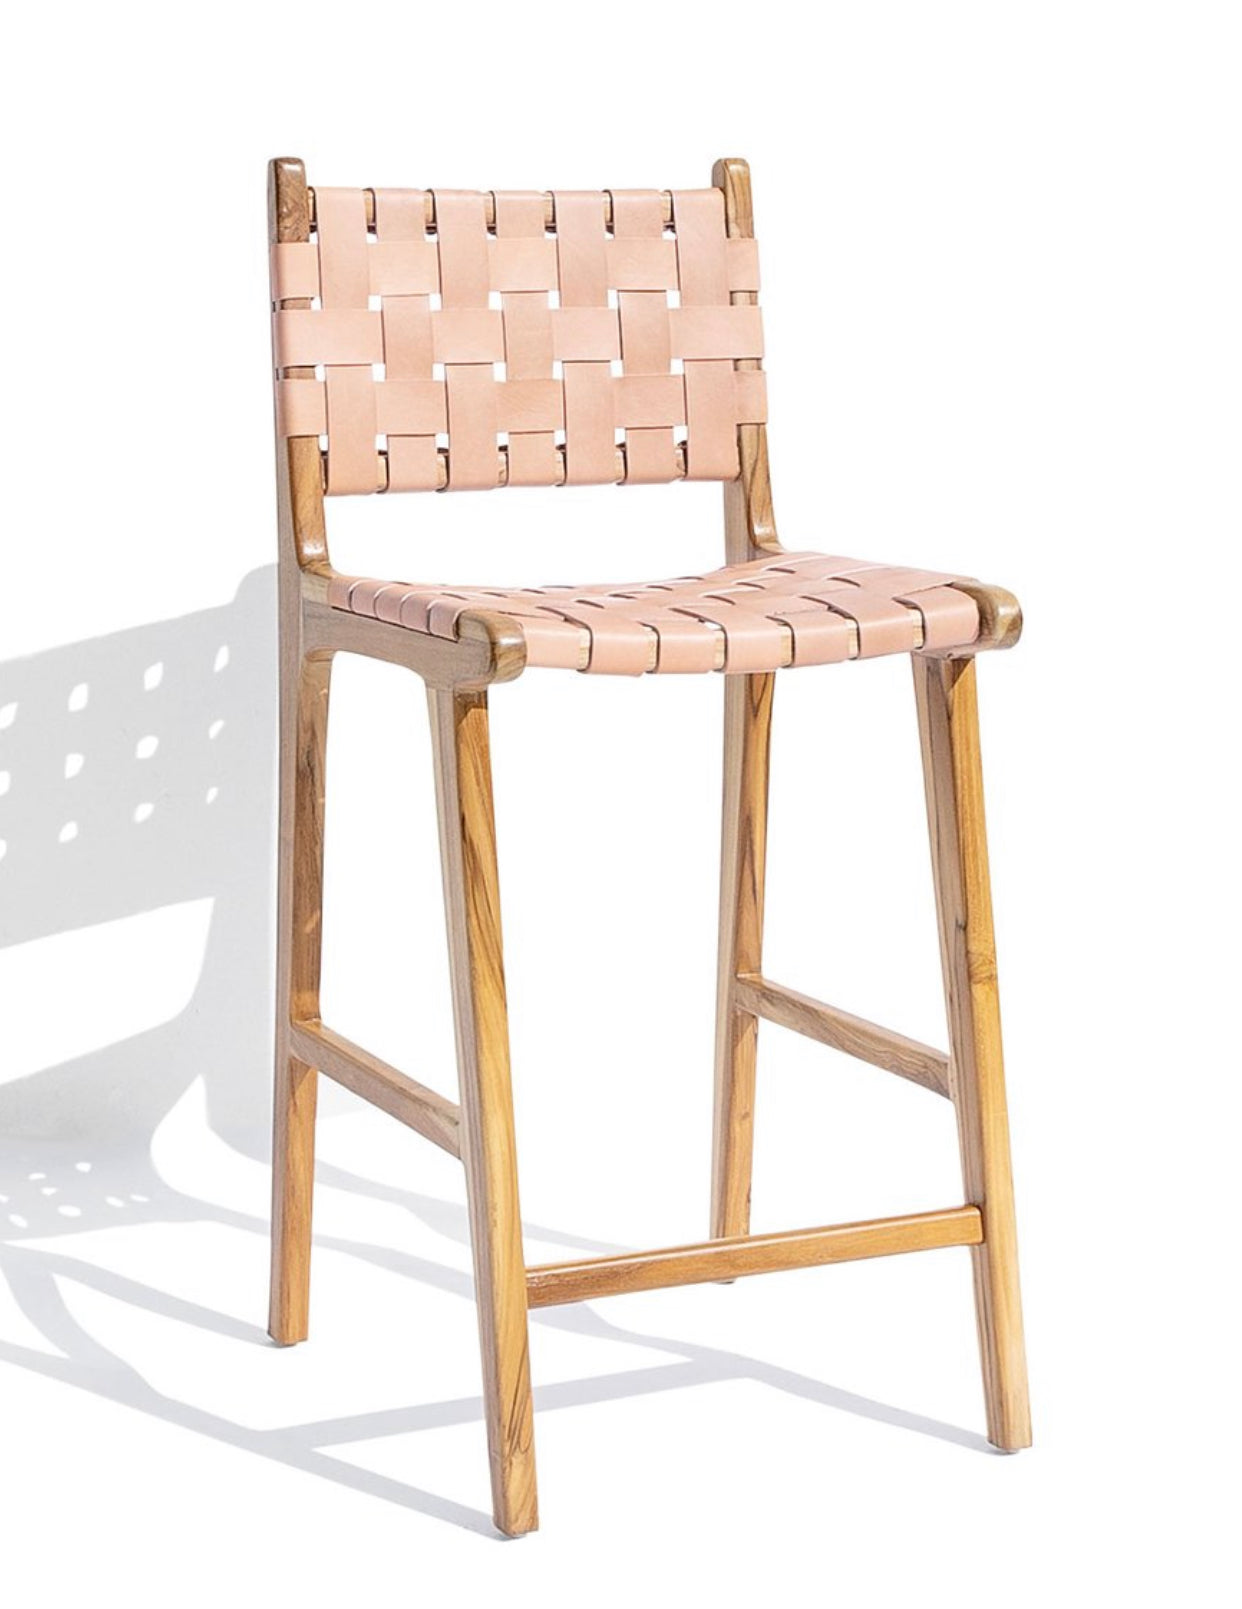 Woven Leather Strap Bar Stool - Nude